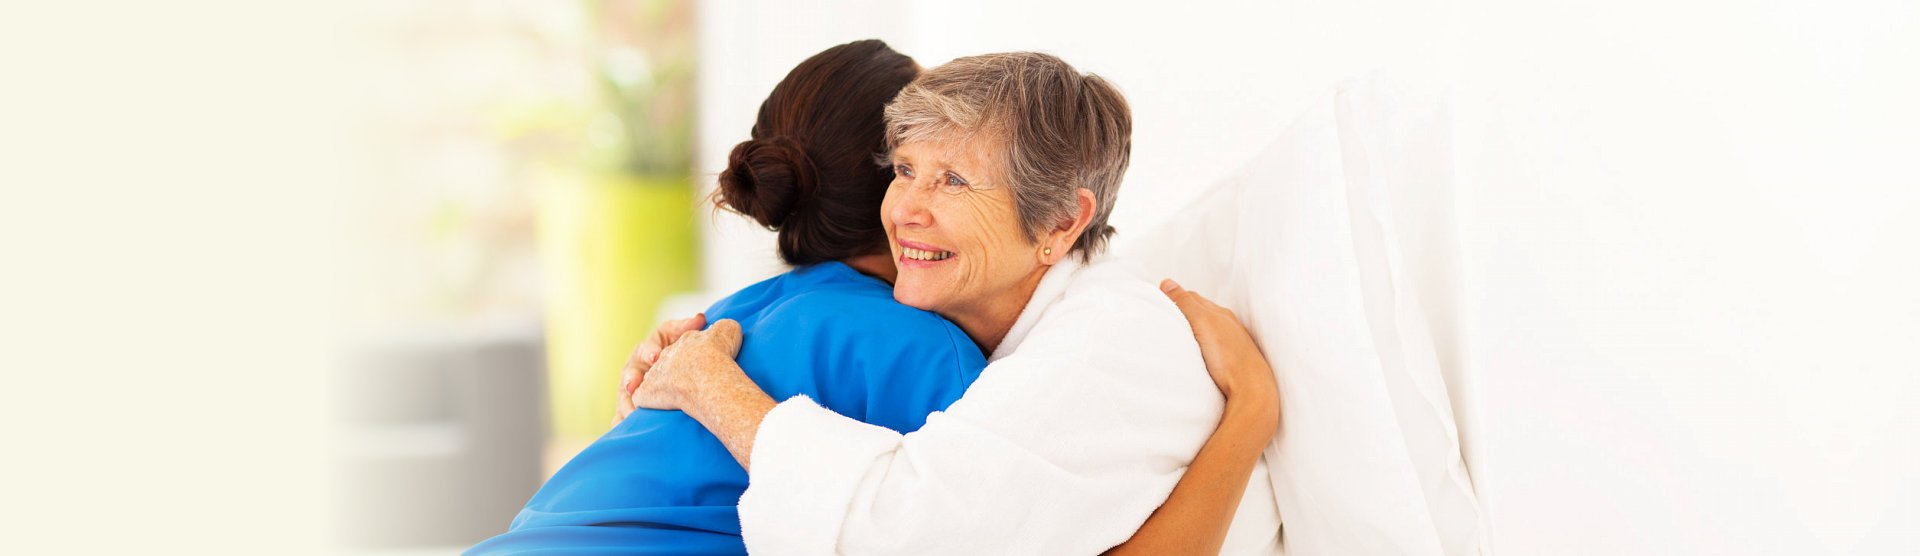 old woman and caregiver are hugging